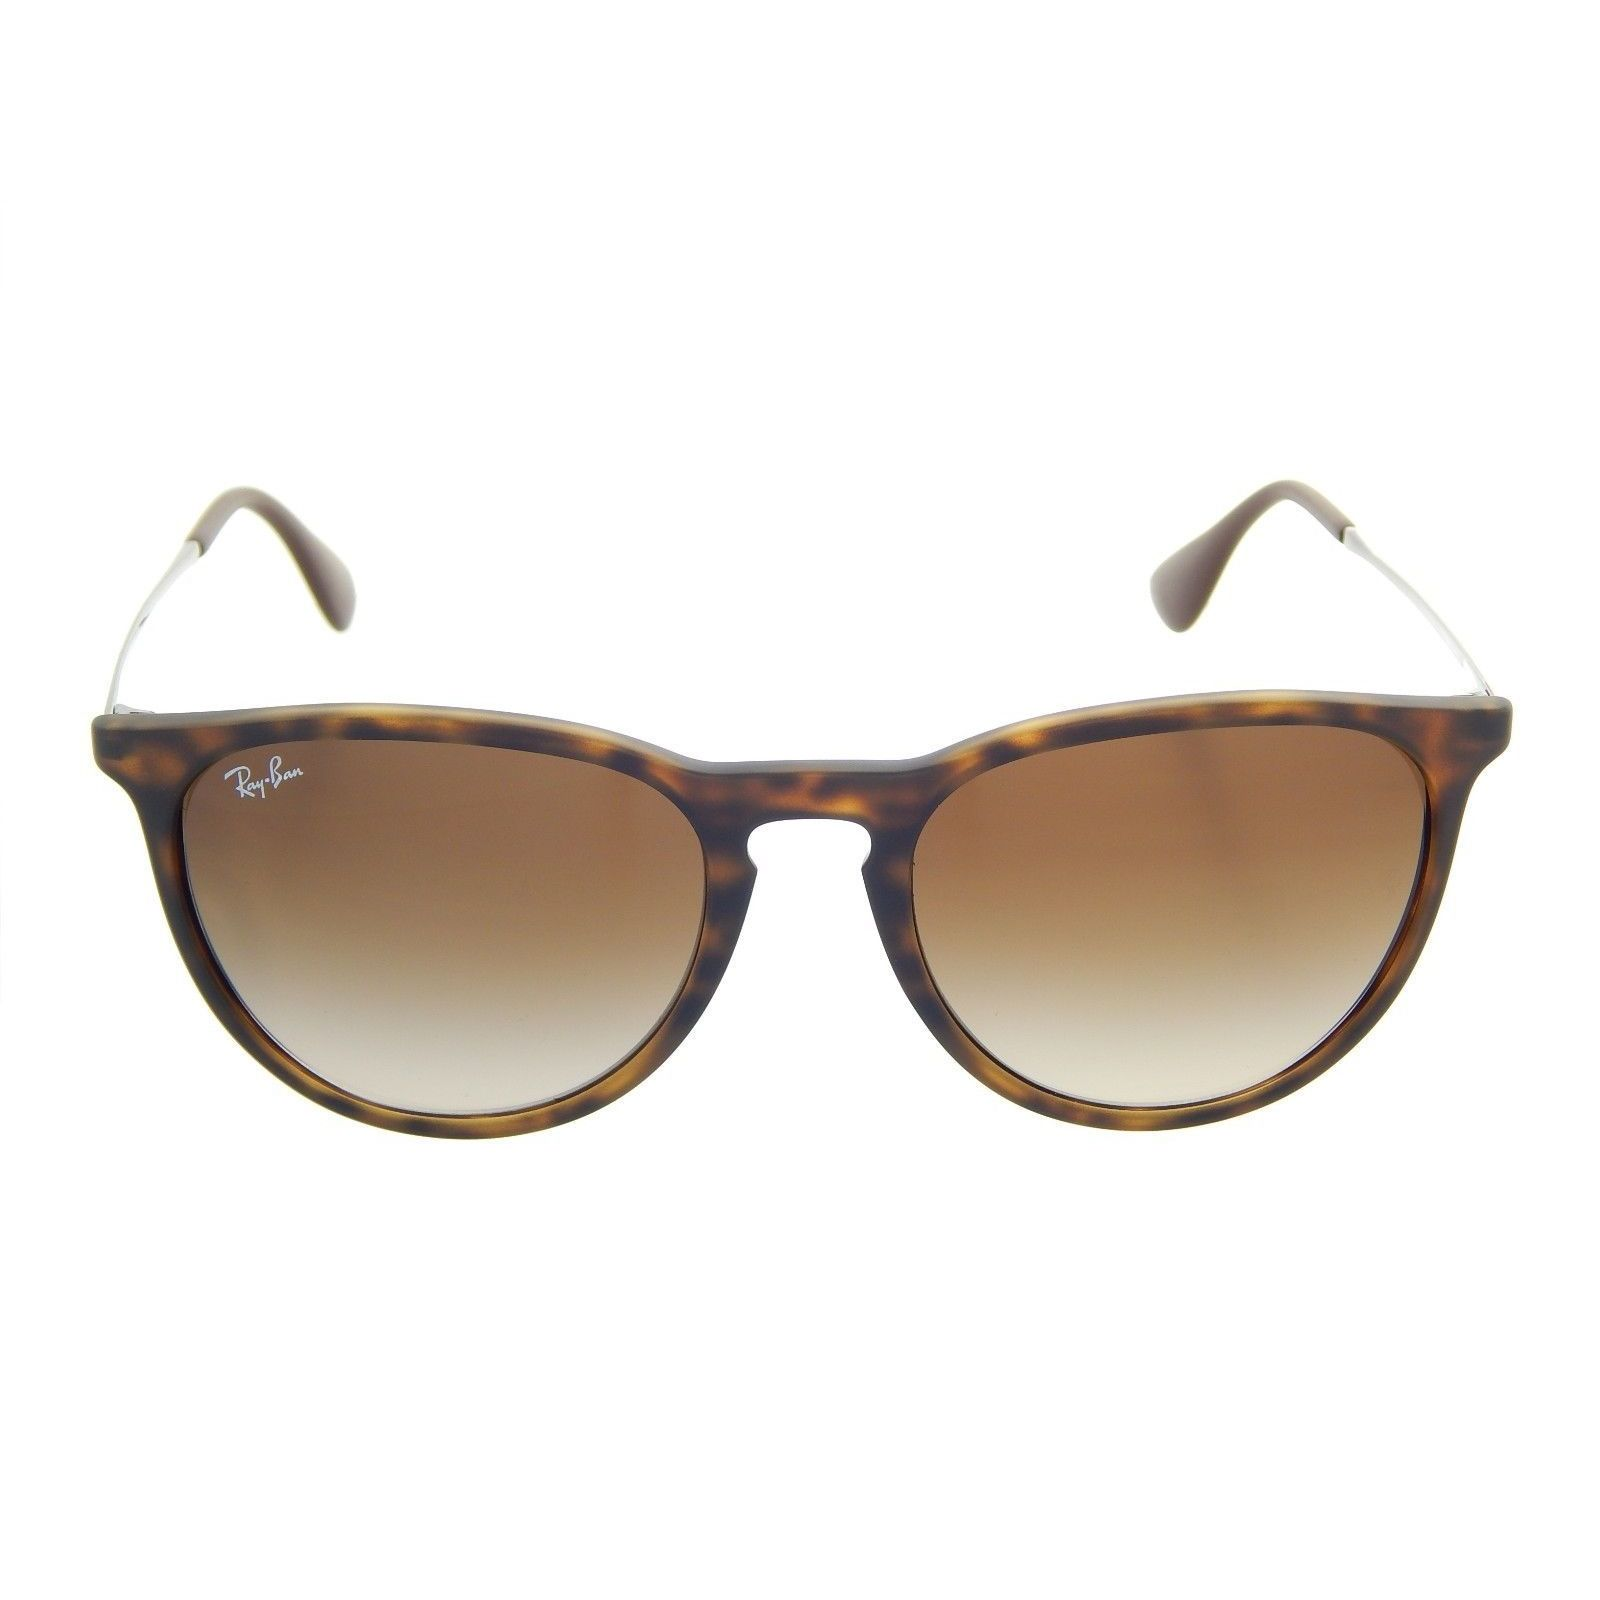 752ef77189063 Shop Ray-Ban Erika RB 4171 Unisex Tortoise Gunmetal Frame Brown Gradient  Lens Sunglasses - Free Shipping Today - Overstock - 9007693